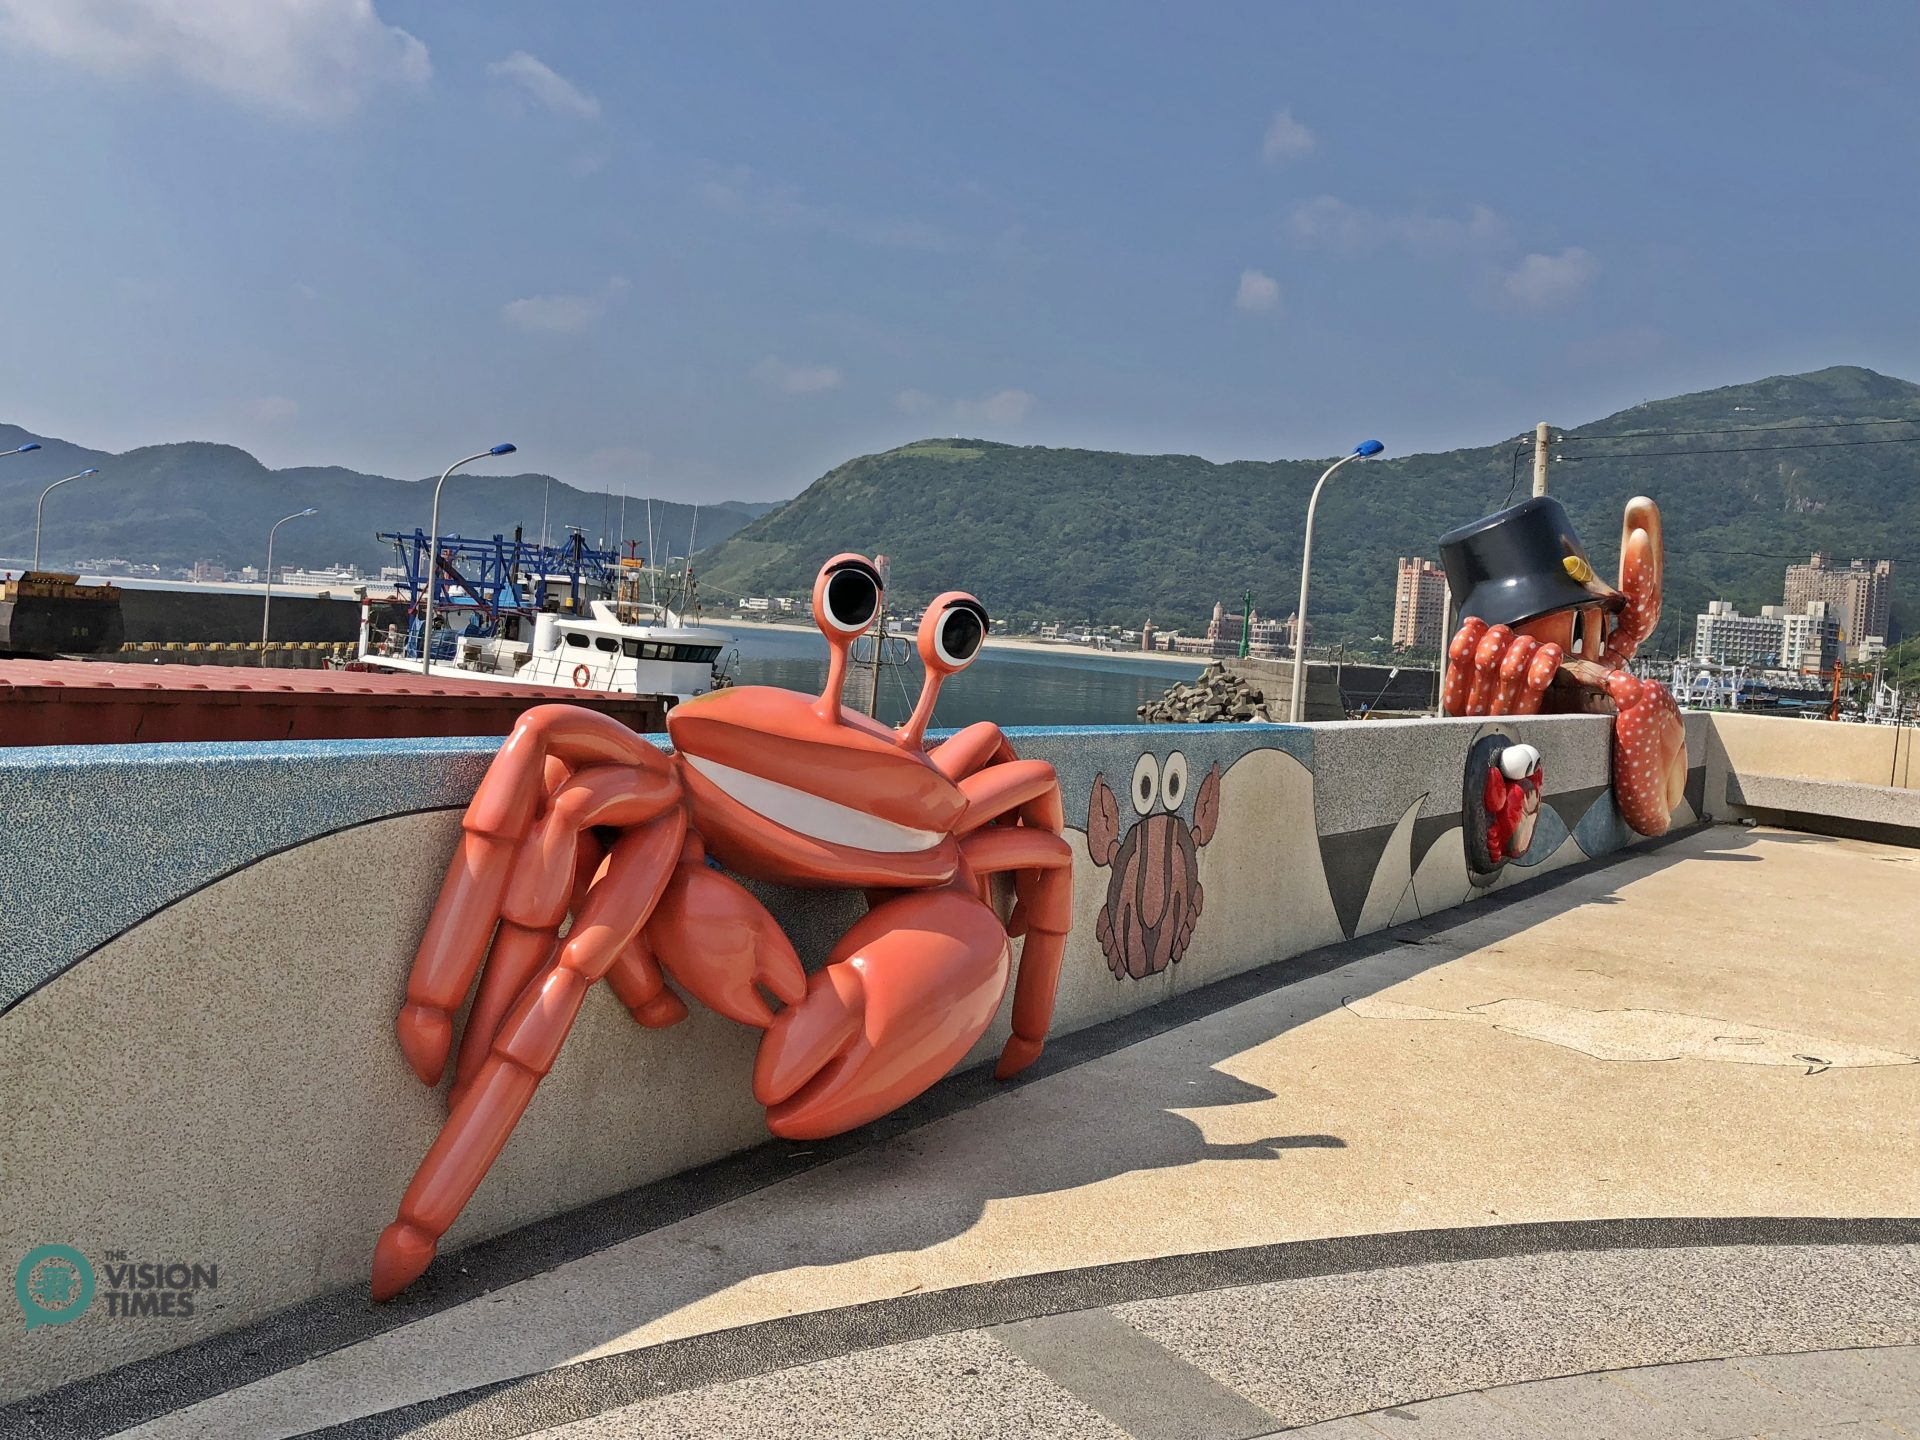 The Crab Theme Park at the Guihou Fishing Harbor. (Image: Julia Fu / Vision Times)